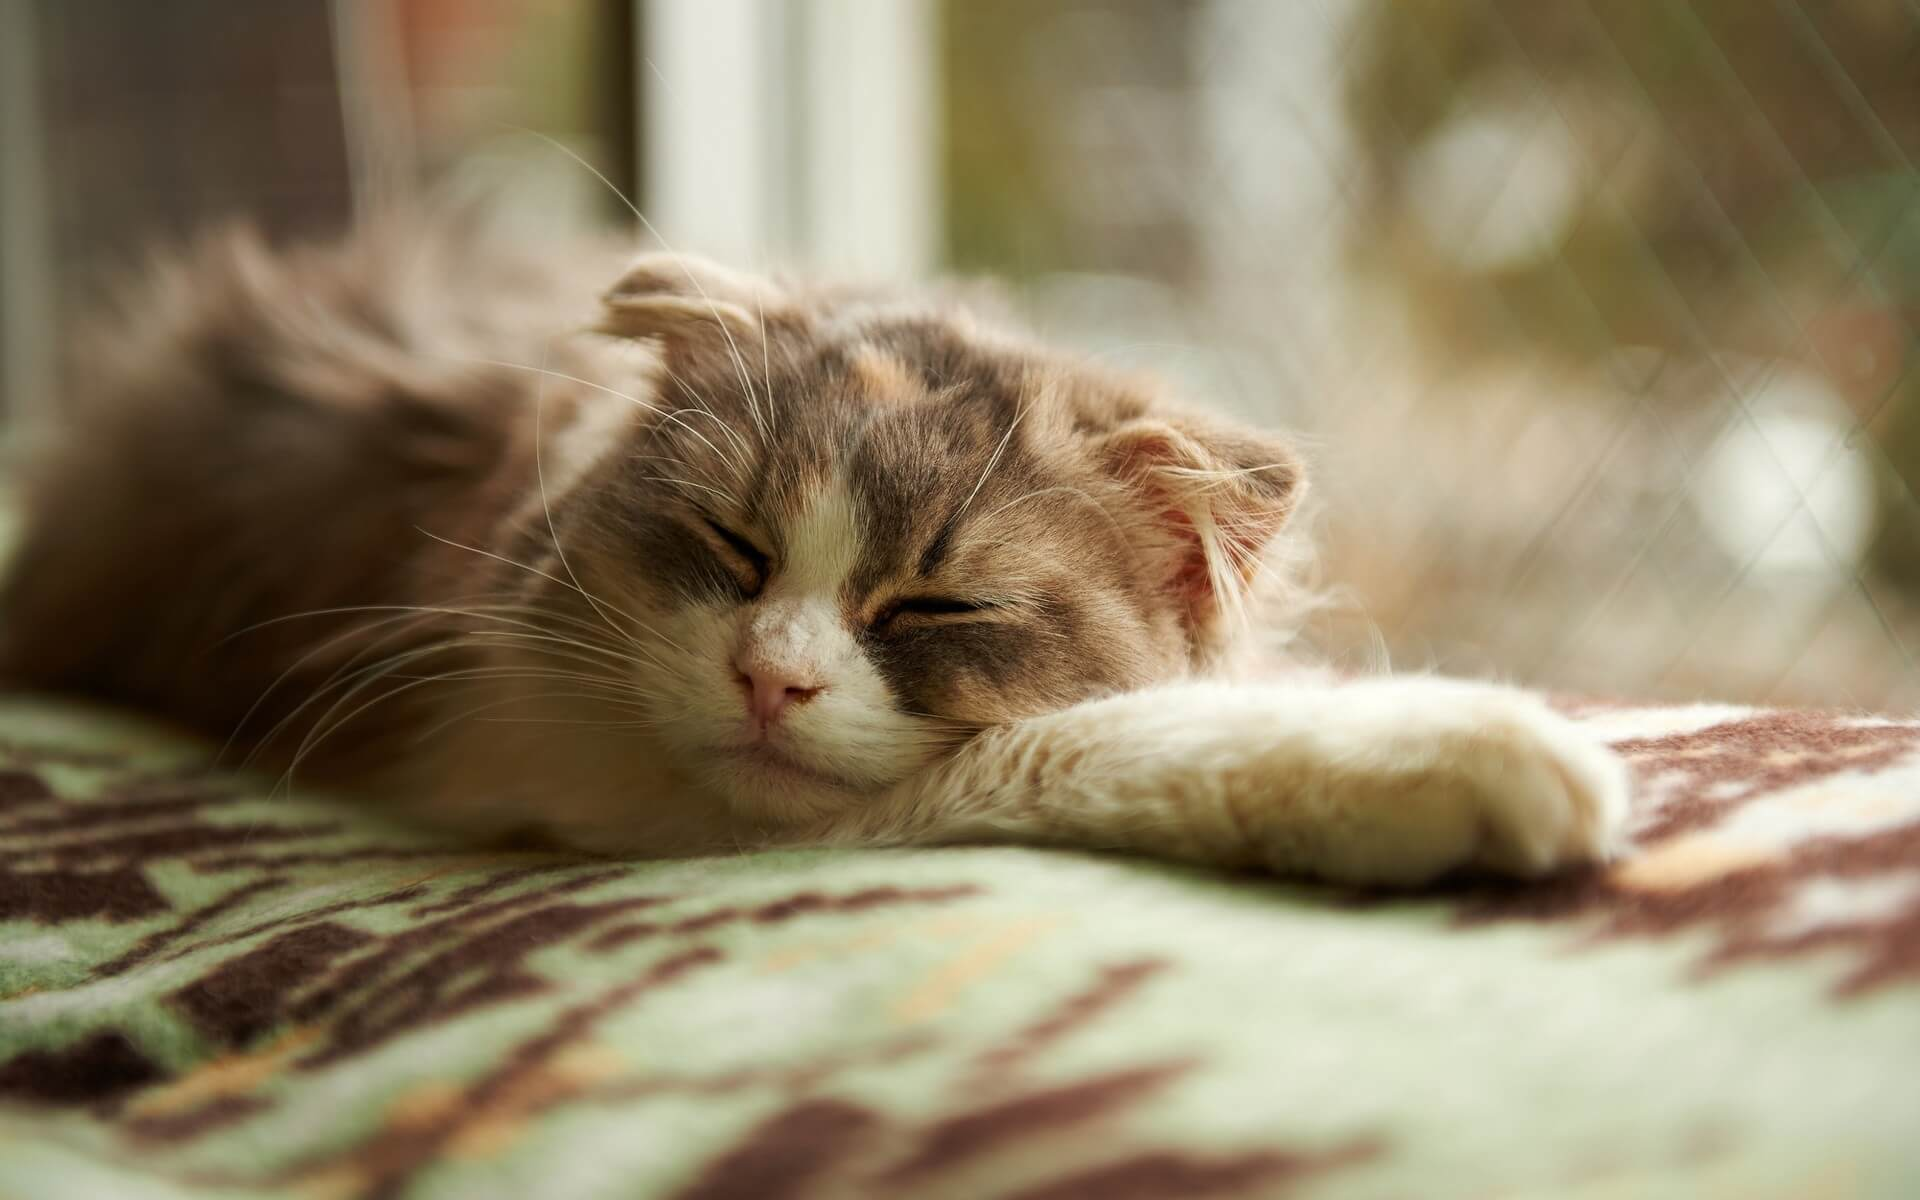 5 Reasons Why Cats Breathing Heavily While Resting?